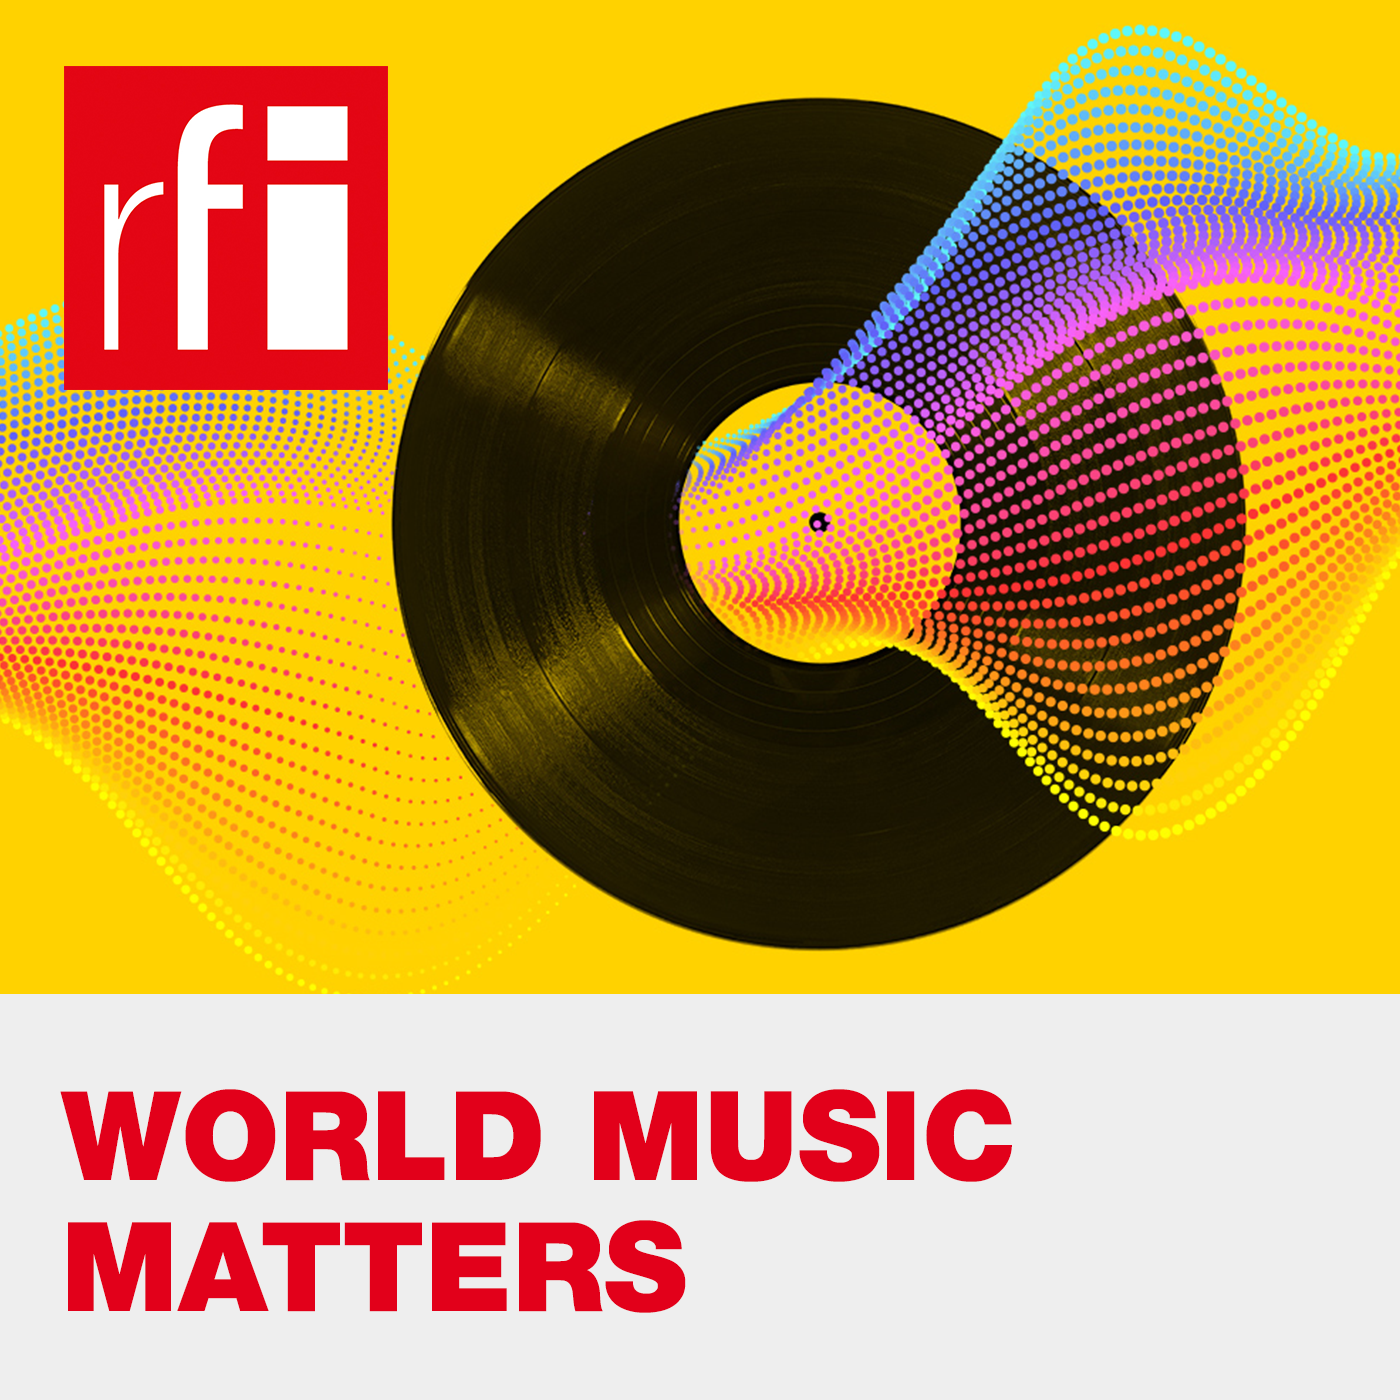 World Music Matters - Klezmer, funk and hip hop unite against racism and intolerance in Trump's America